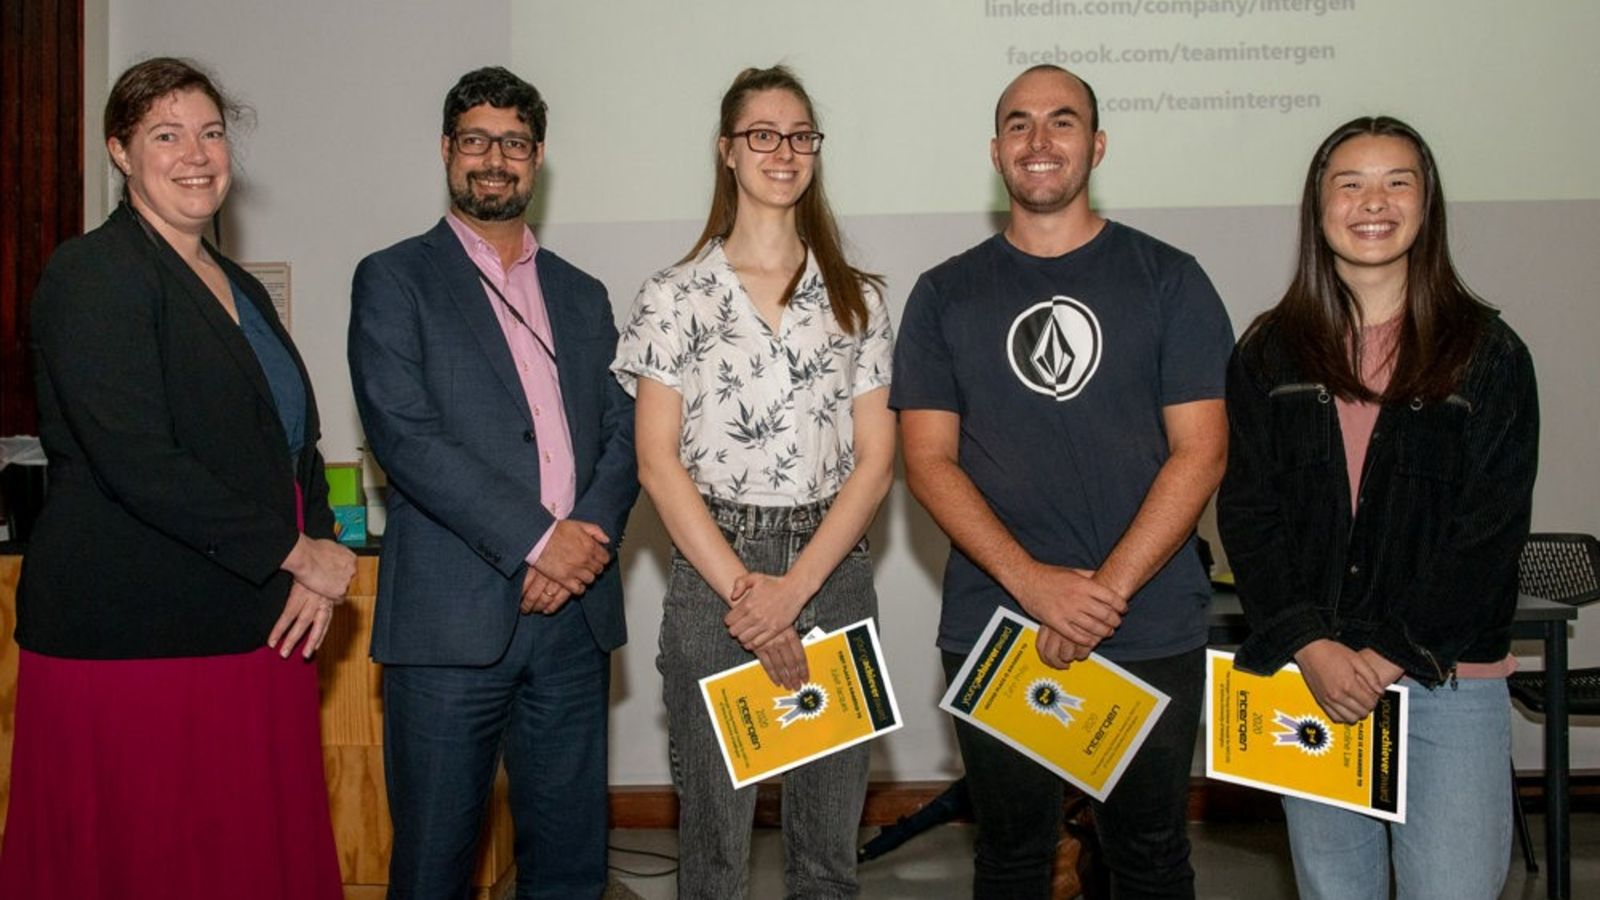 Three students receive Young Achiever awards, flanked by Intergen representatives